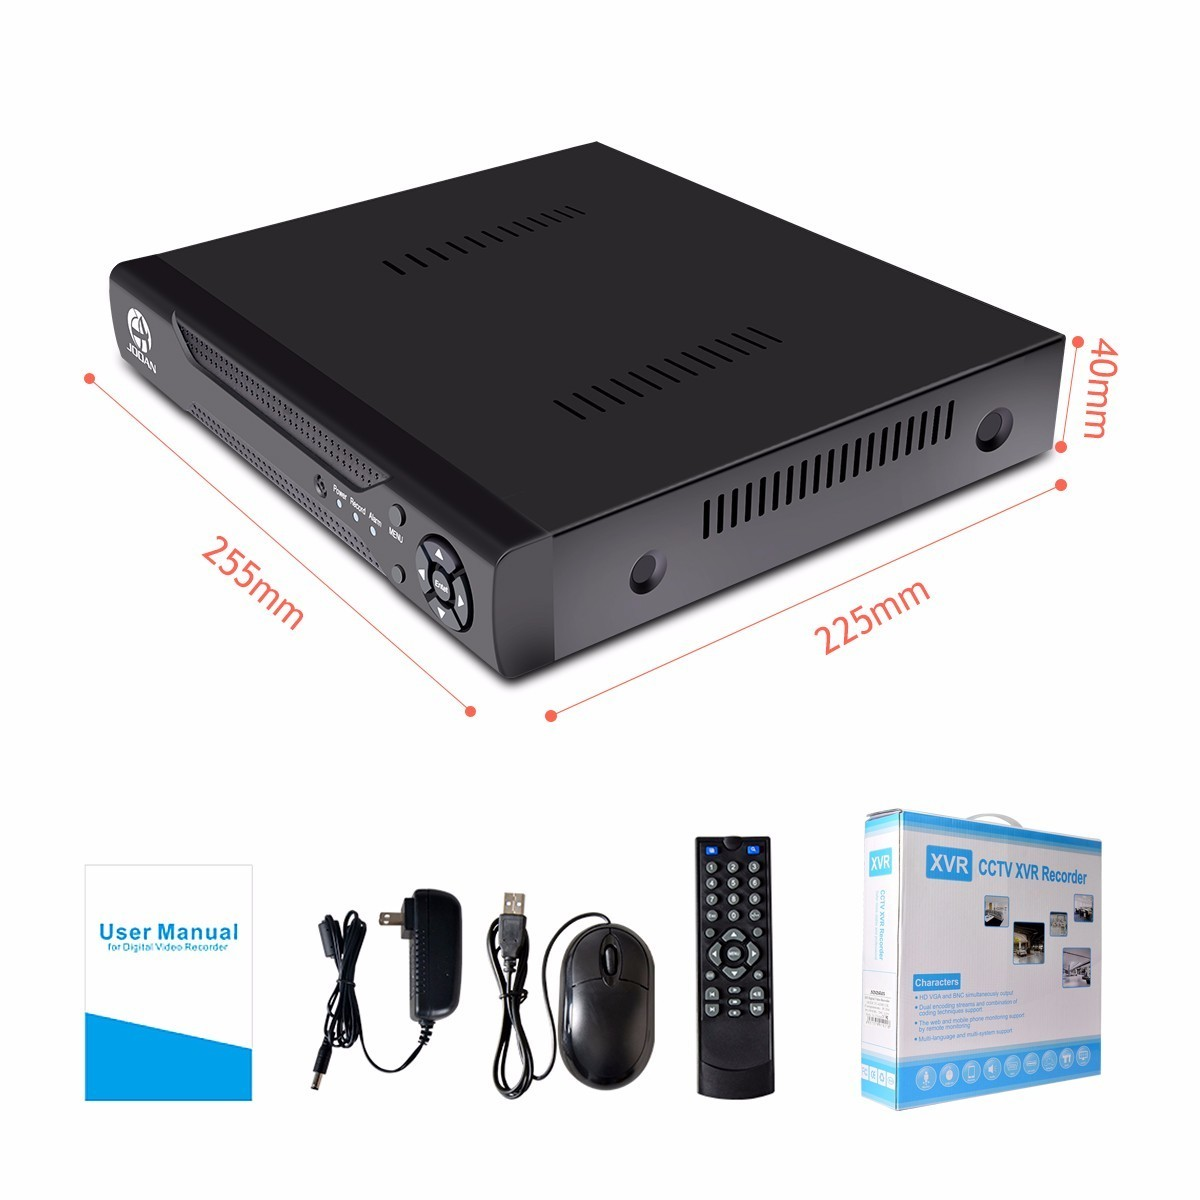 dvr manual portugues various owner manual guide u2022 rh linkrepairguide today